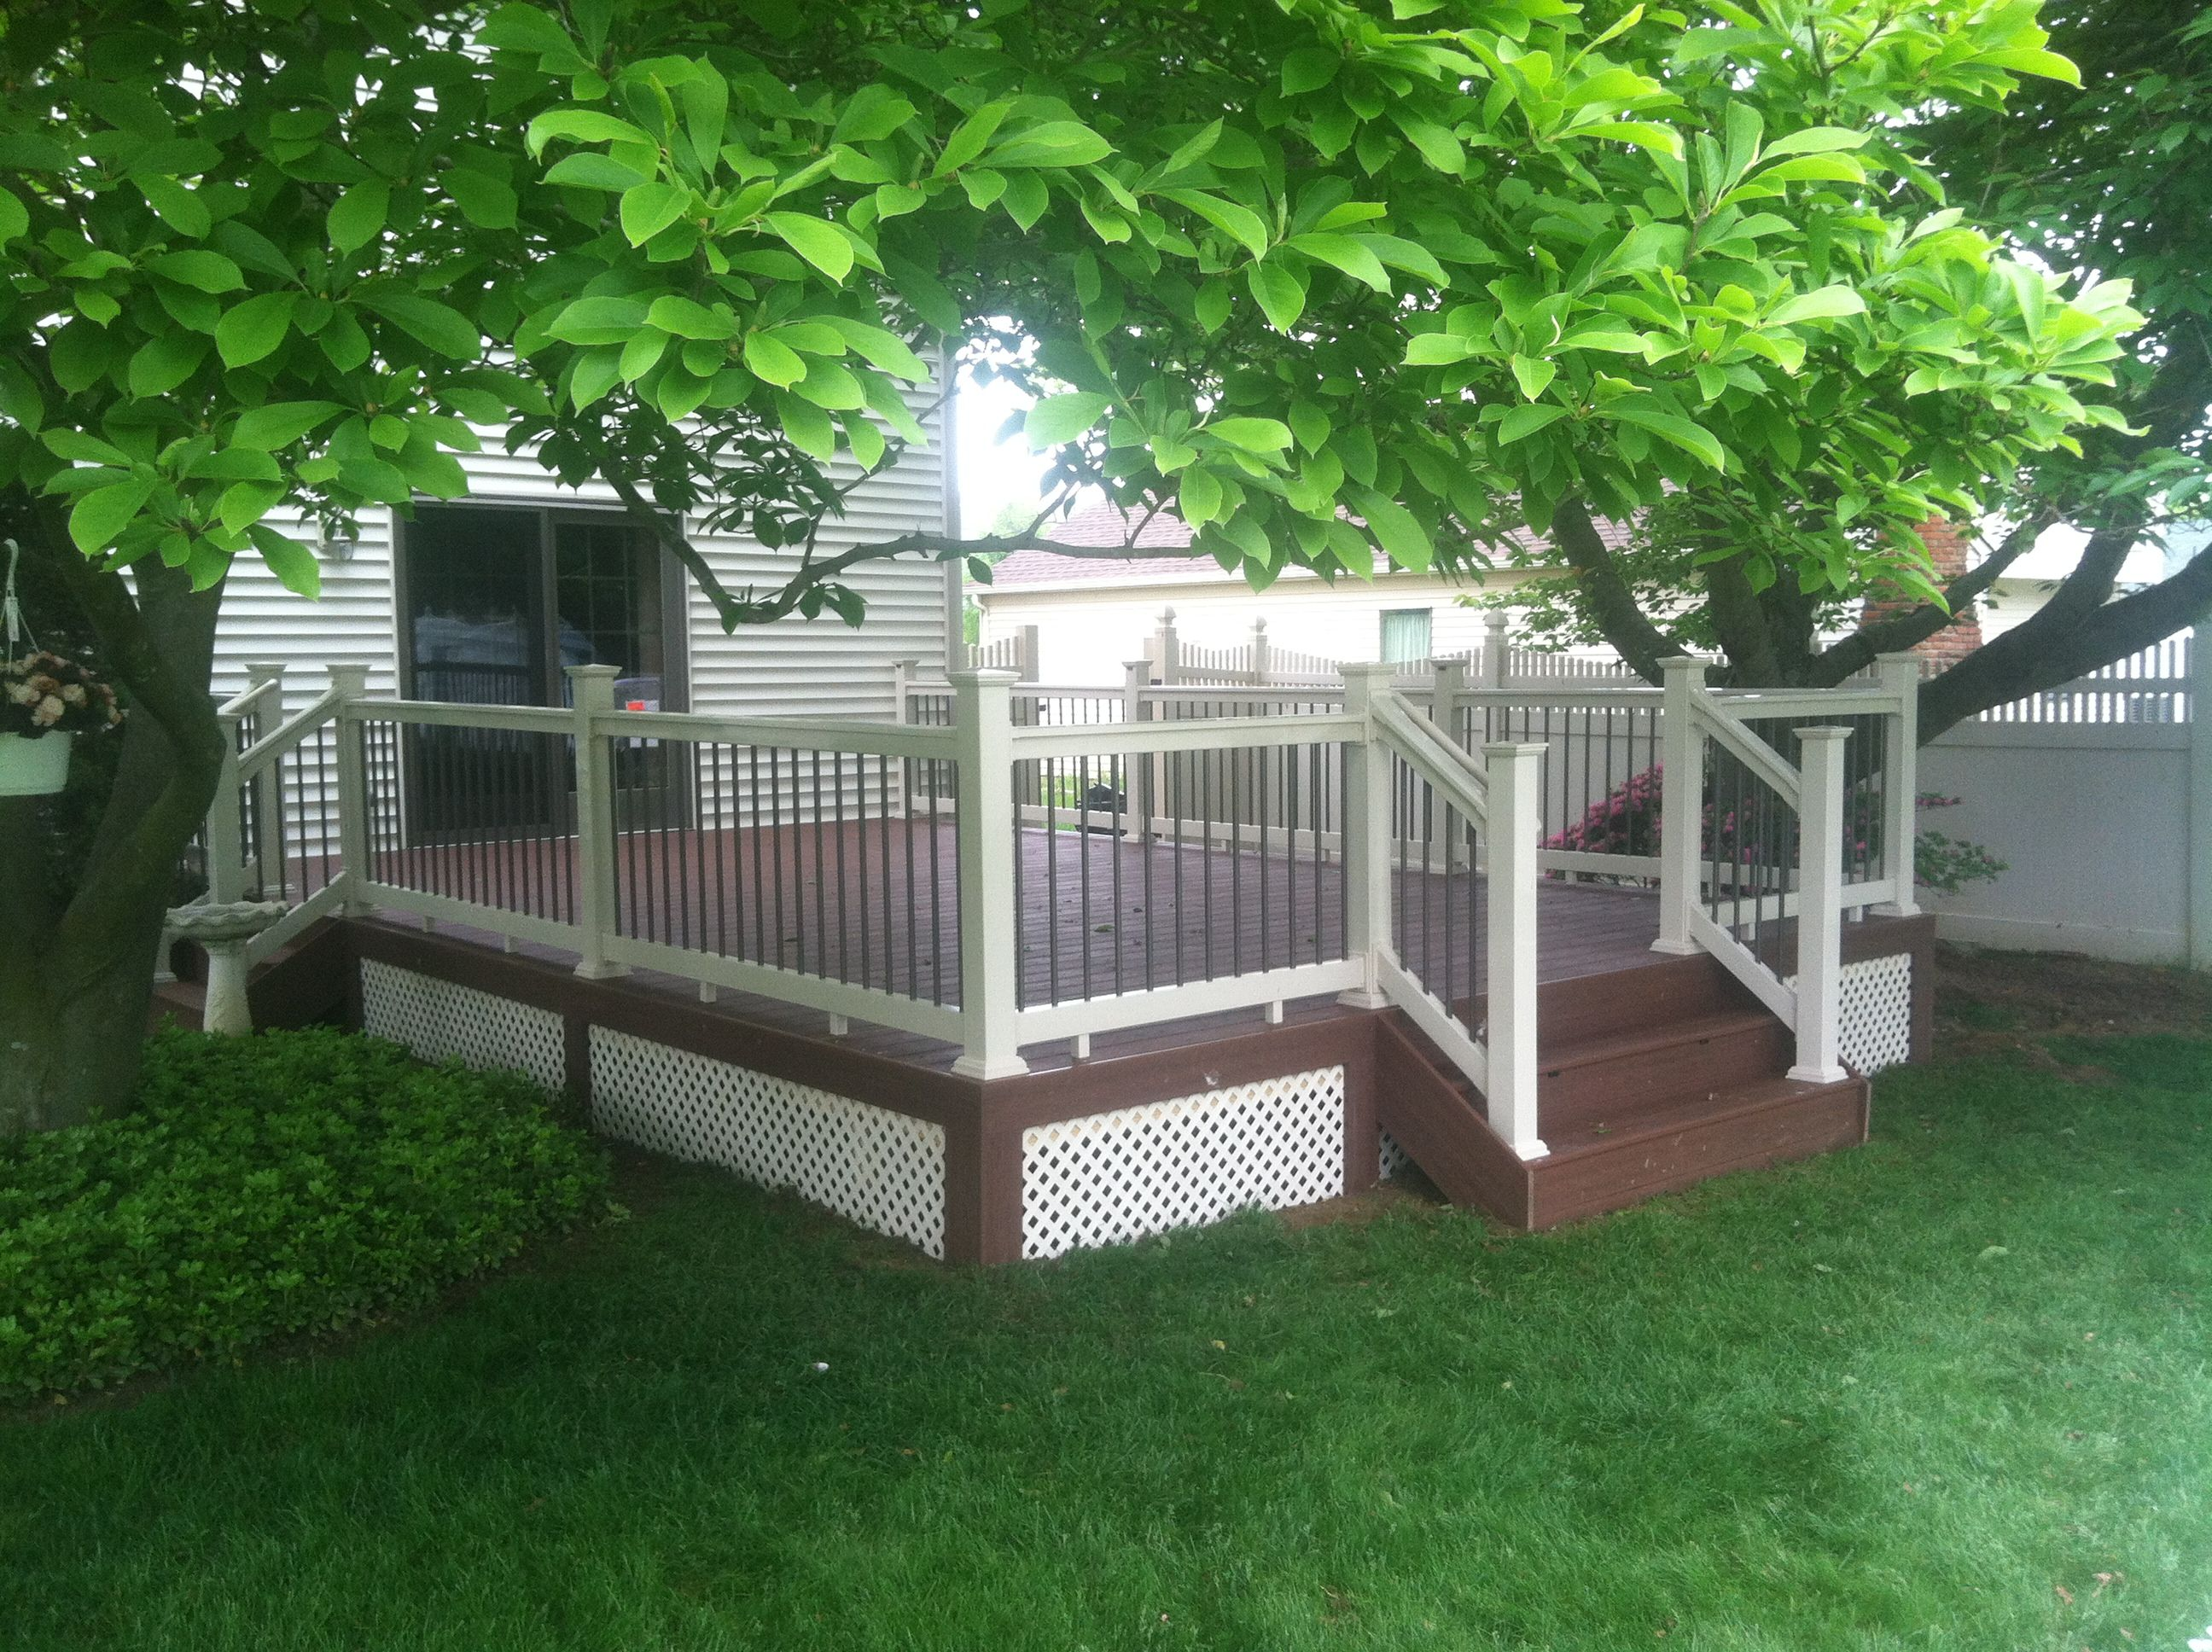 Ampro brazilian redwood pvc decking tan deck teck rails with ampro brazilian redwood pvc decking tan deck teck rails with black aluminum balusters at great railing we like to make big dreams come true baanklon Image collections